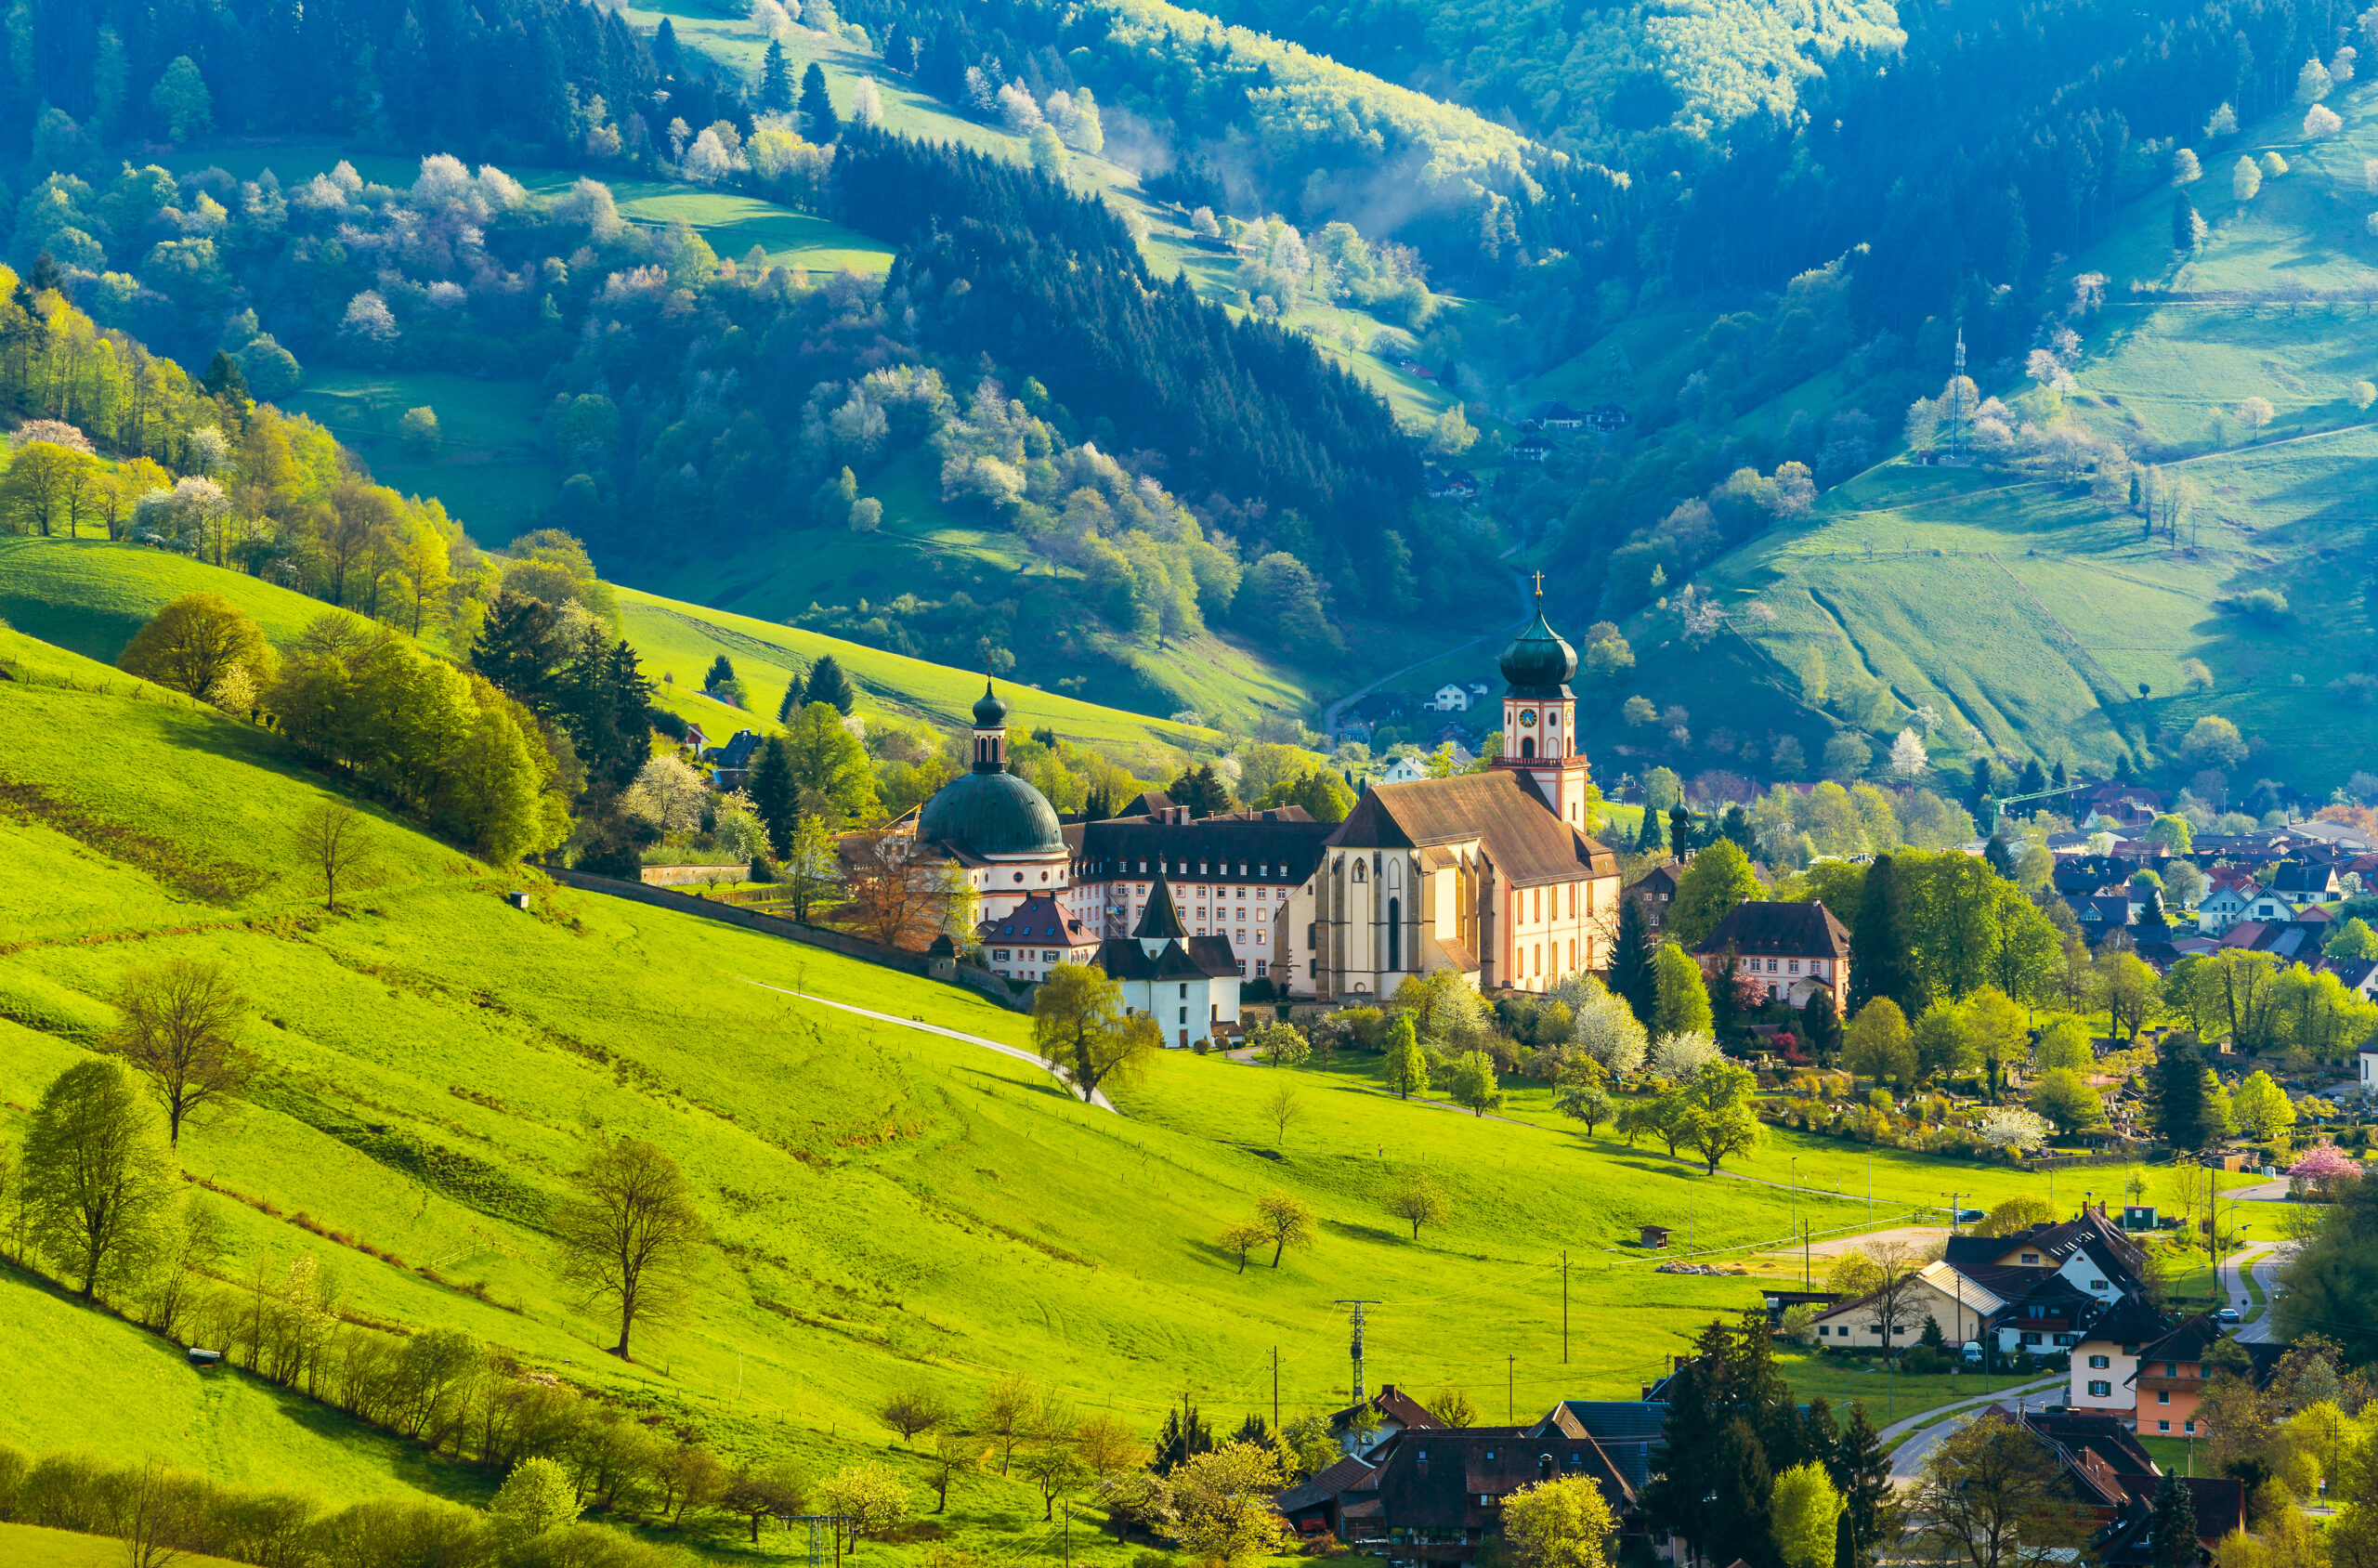 Beautiful countryside mountain landscape with a monastery in village. Germany.